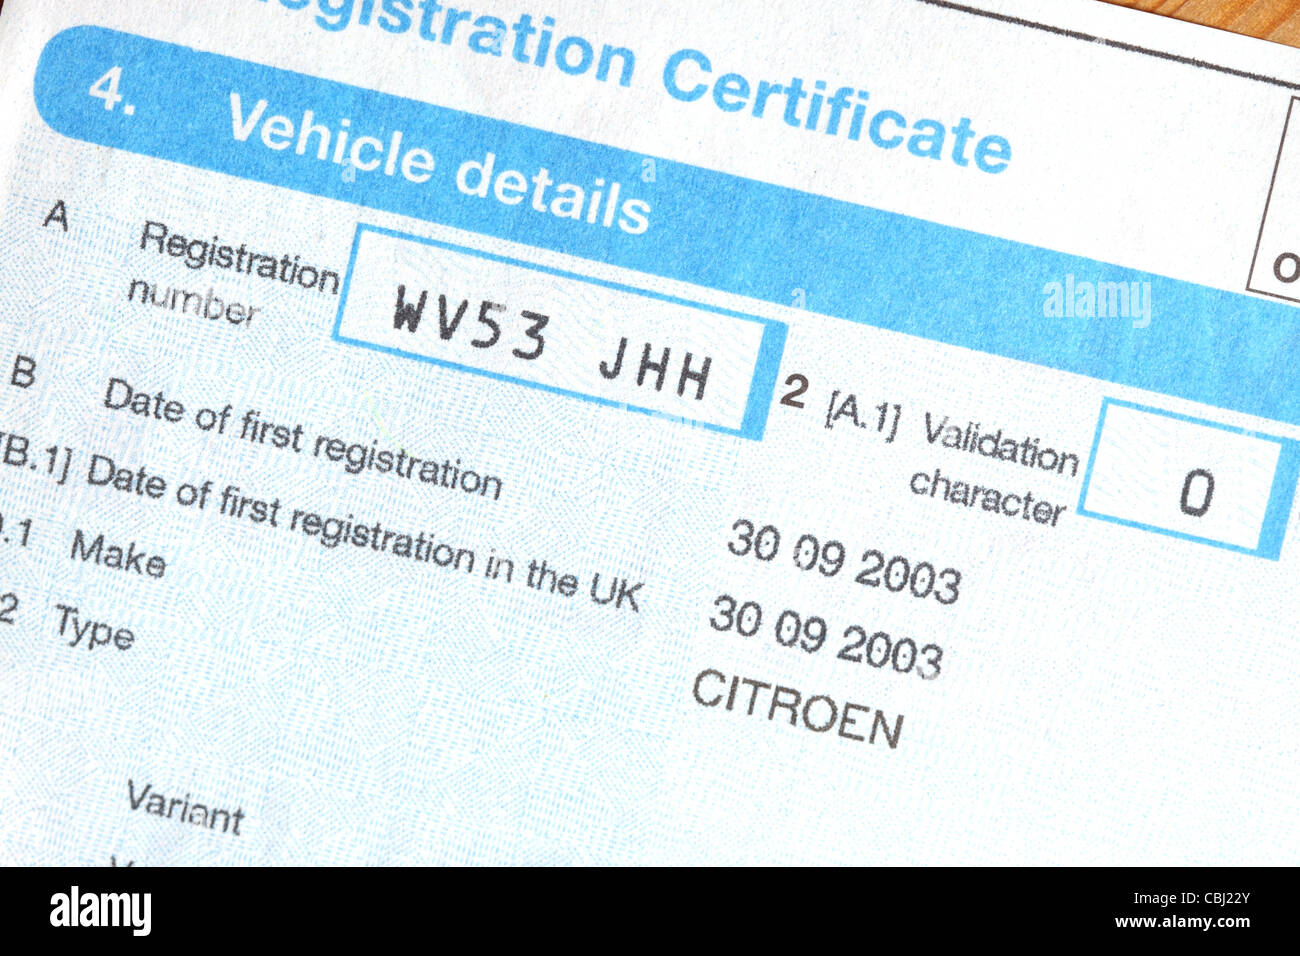 V5c Vehicle Registration Certificate Dvla Car Document Stock Photo